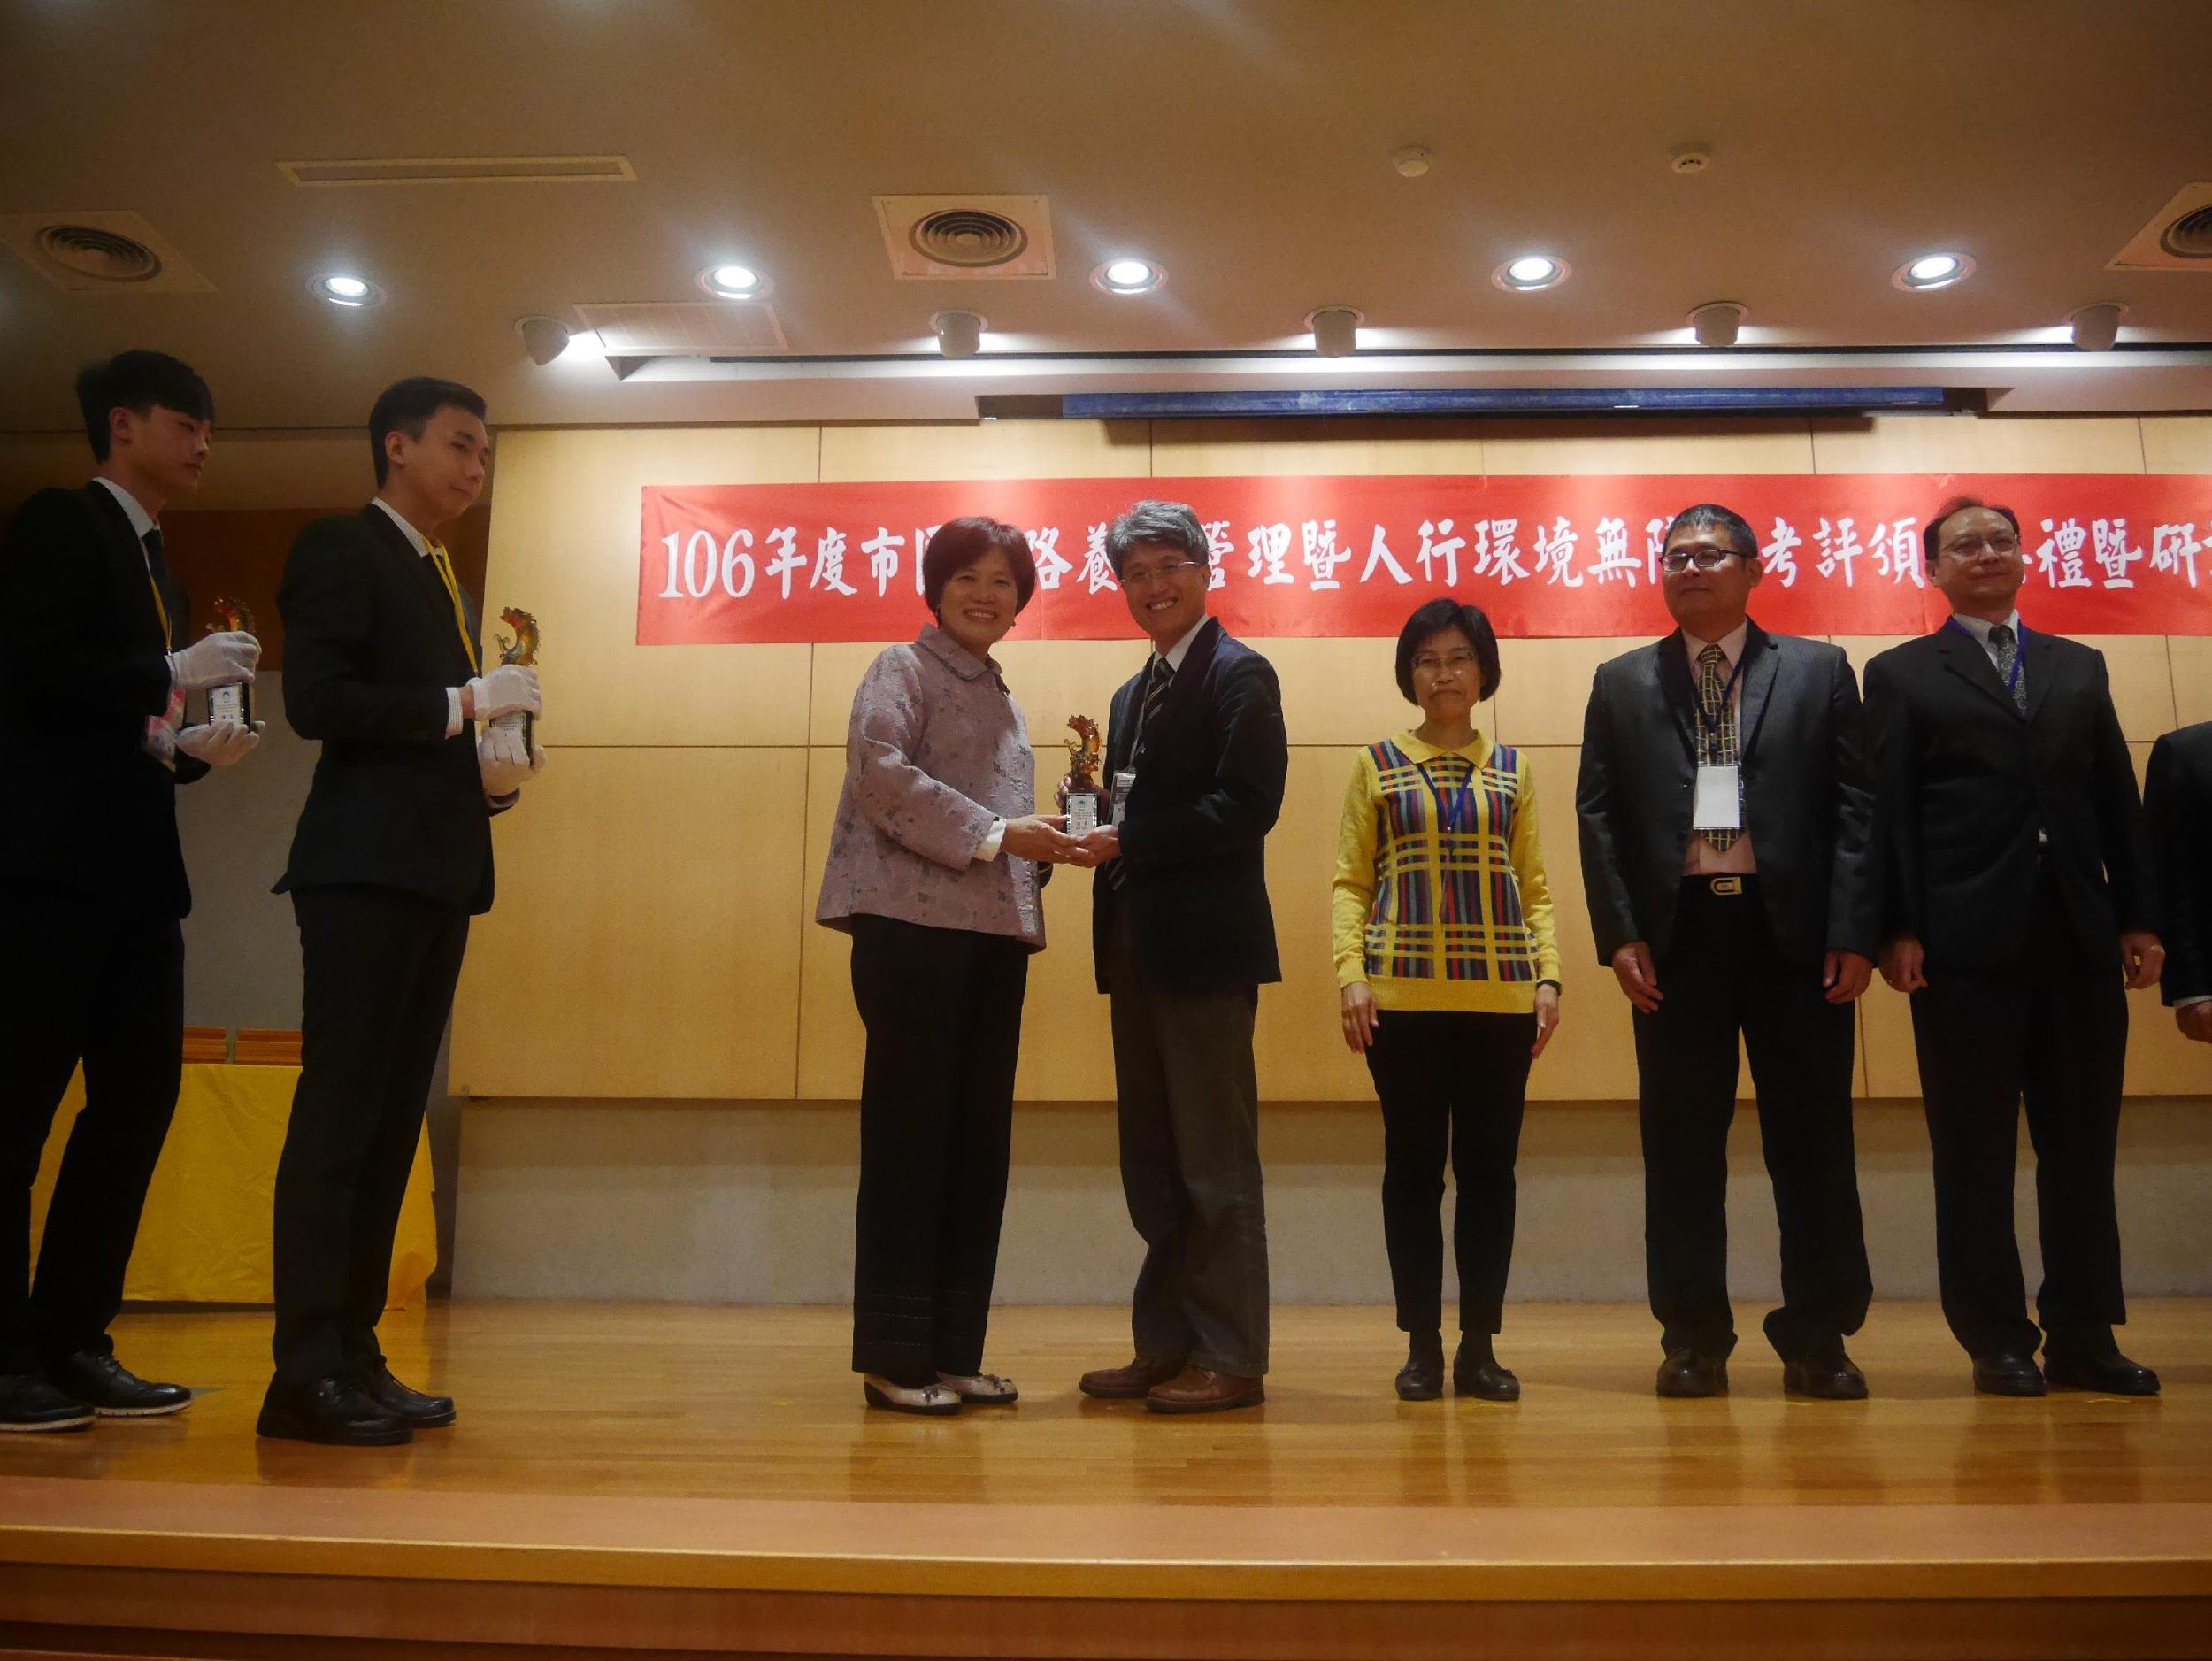 Vice Minister of Civic Affairs, Lin Tzuling, awarded the trophy, and Deputy Director of Public Works Department, Taipei City Government Huang Yiping represented to receive the trophy